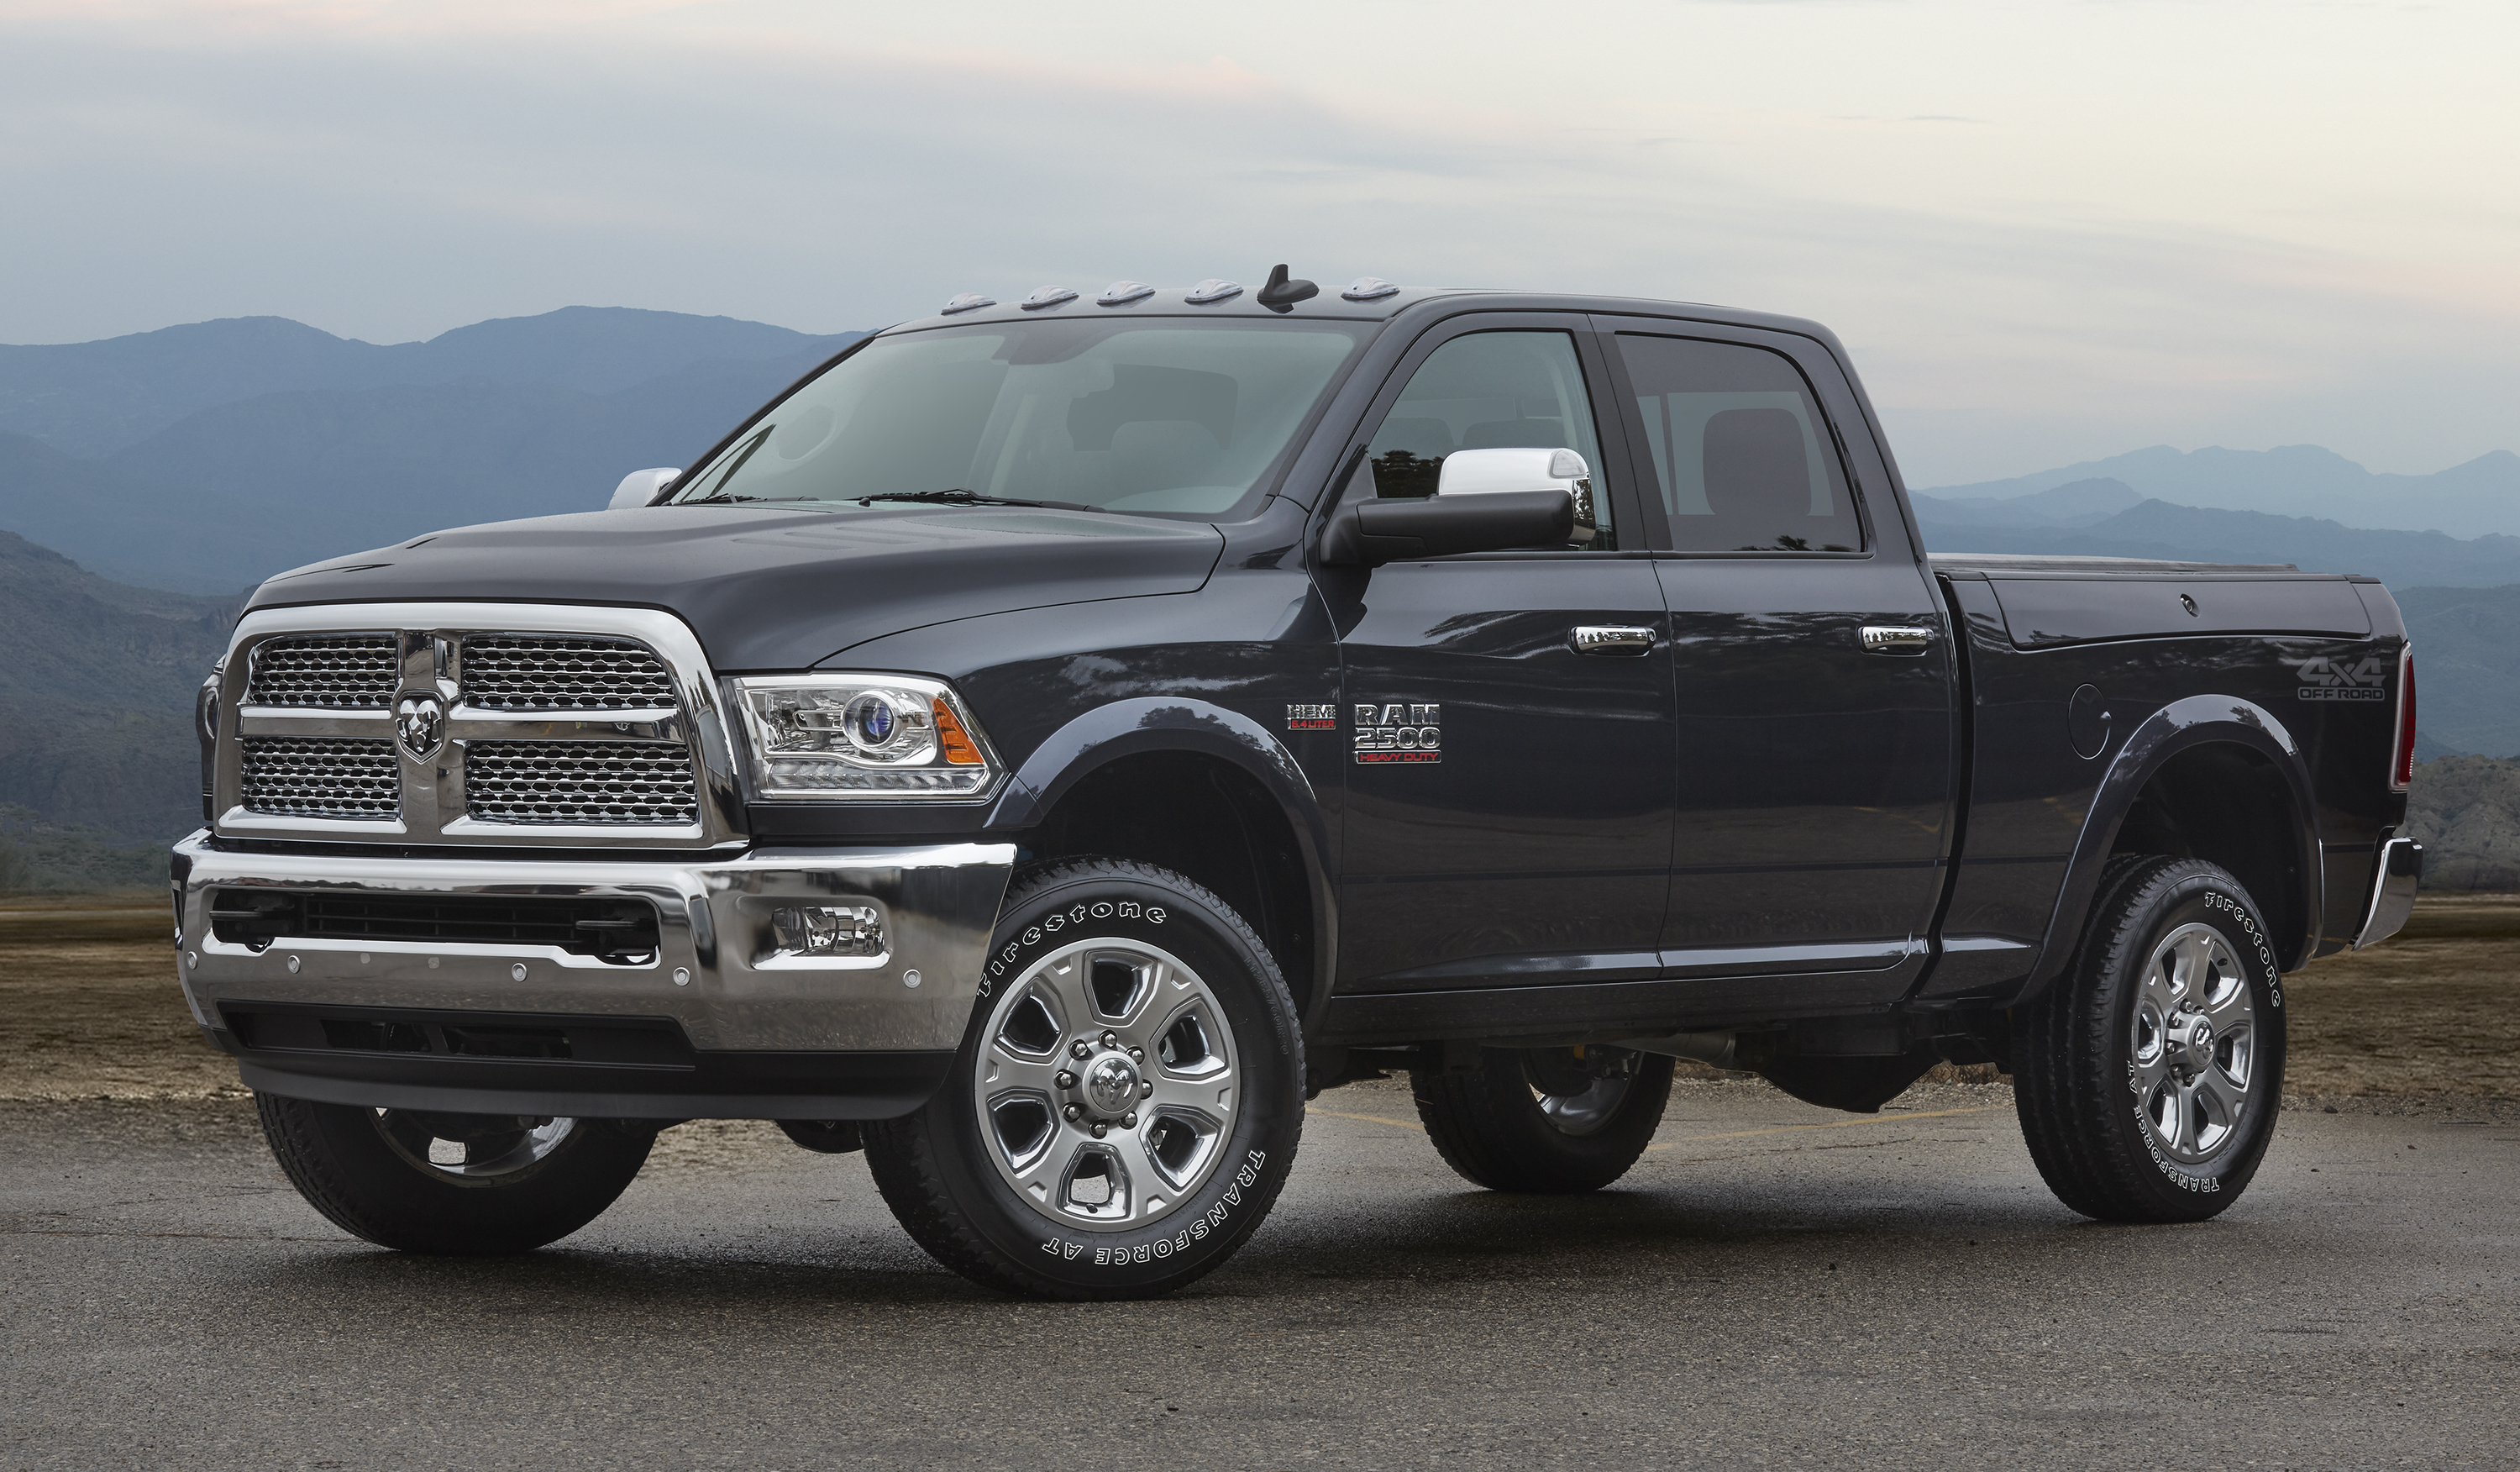 Ram 2500 Crew Cab with 4x4 Off-road package